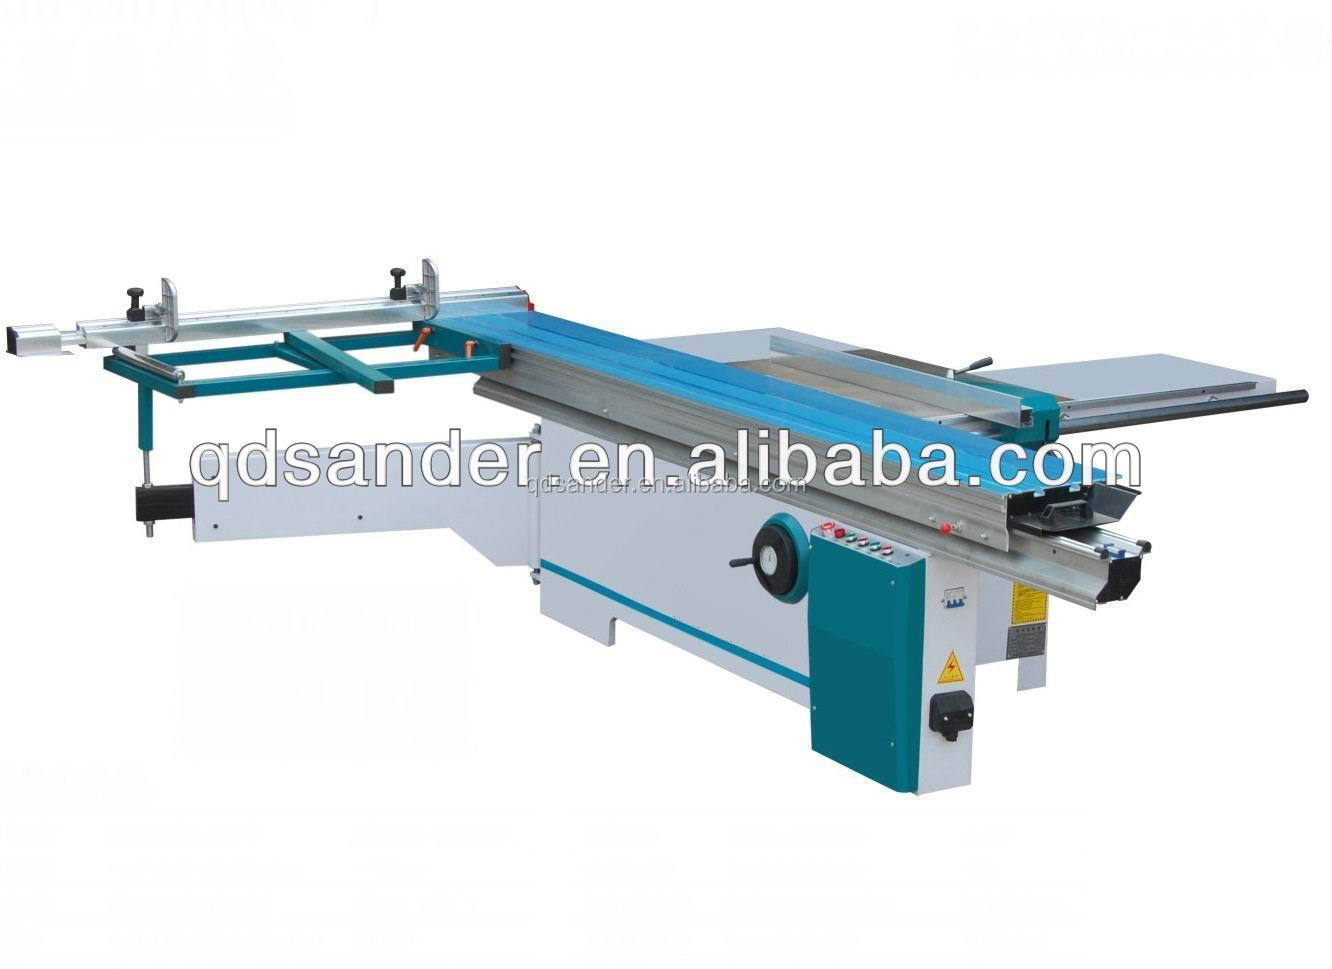 Sliding Table Saw : Sliding Table Saw - Buy Precision Sliding Table Saw,Precision Table ...